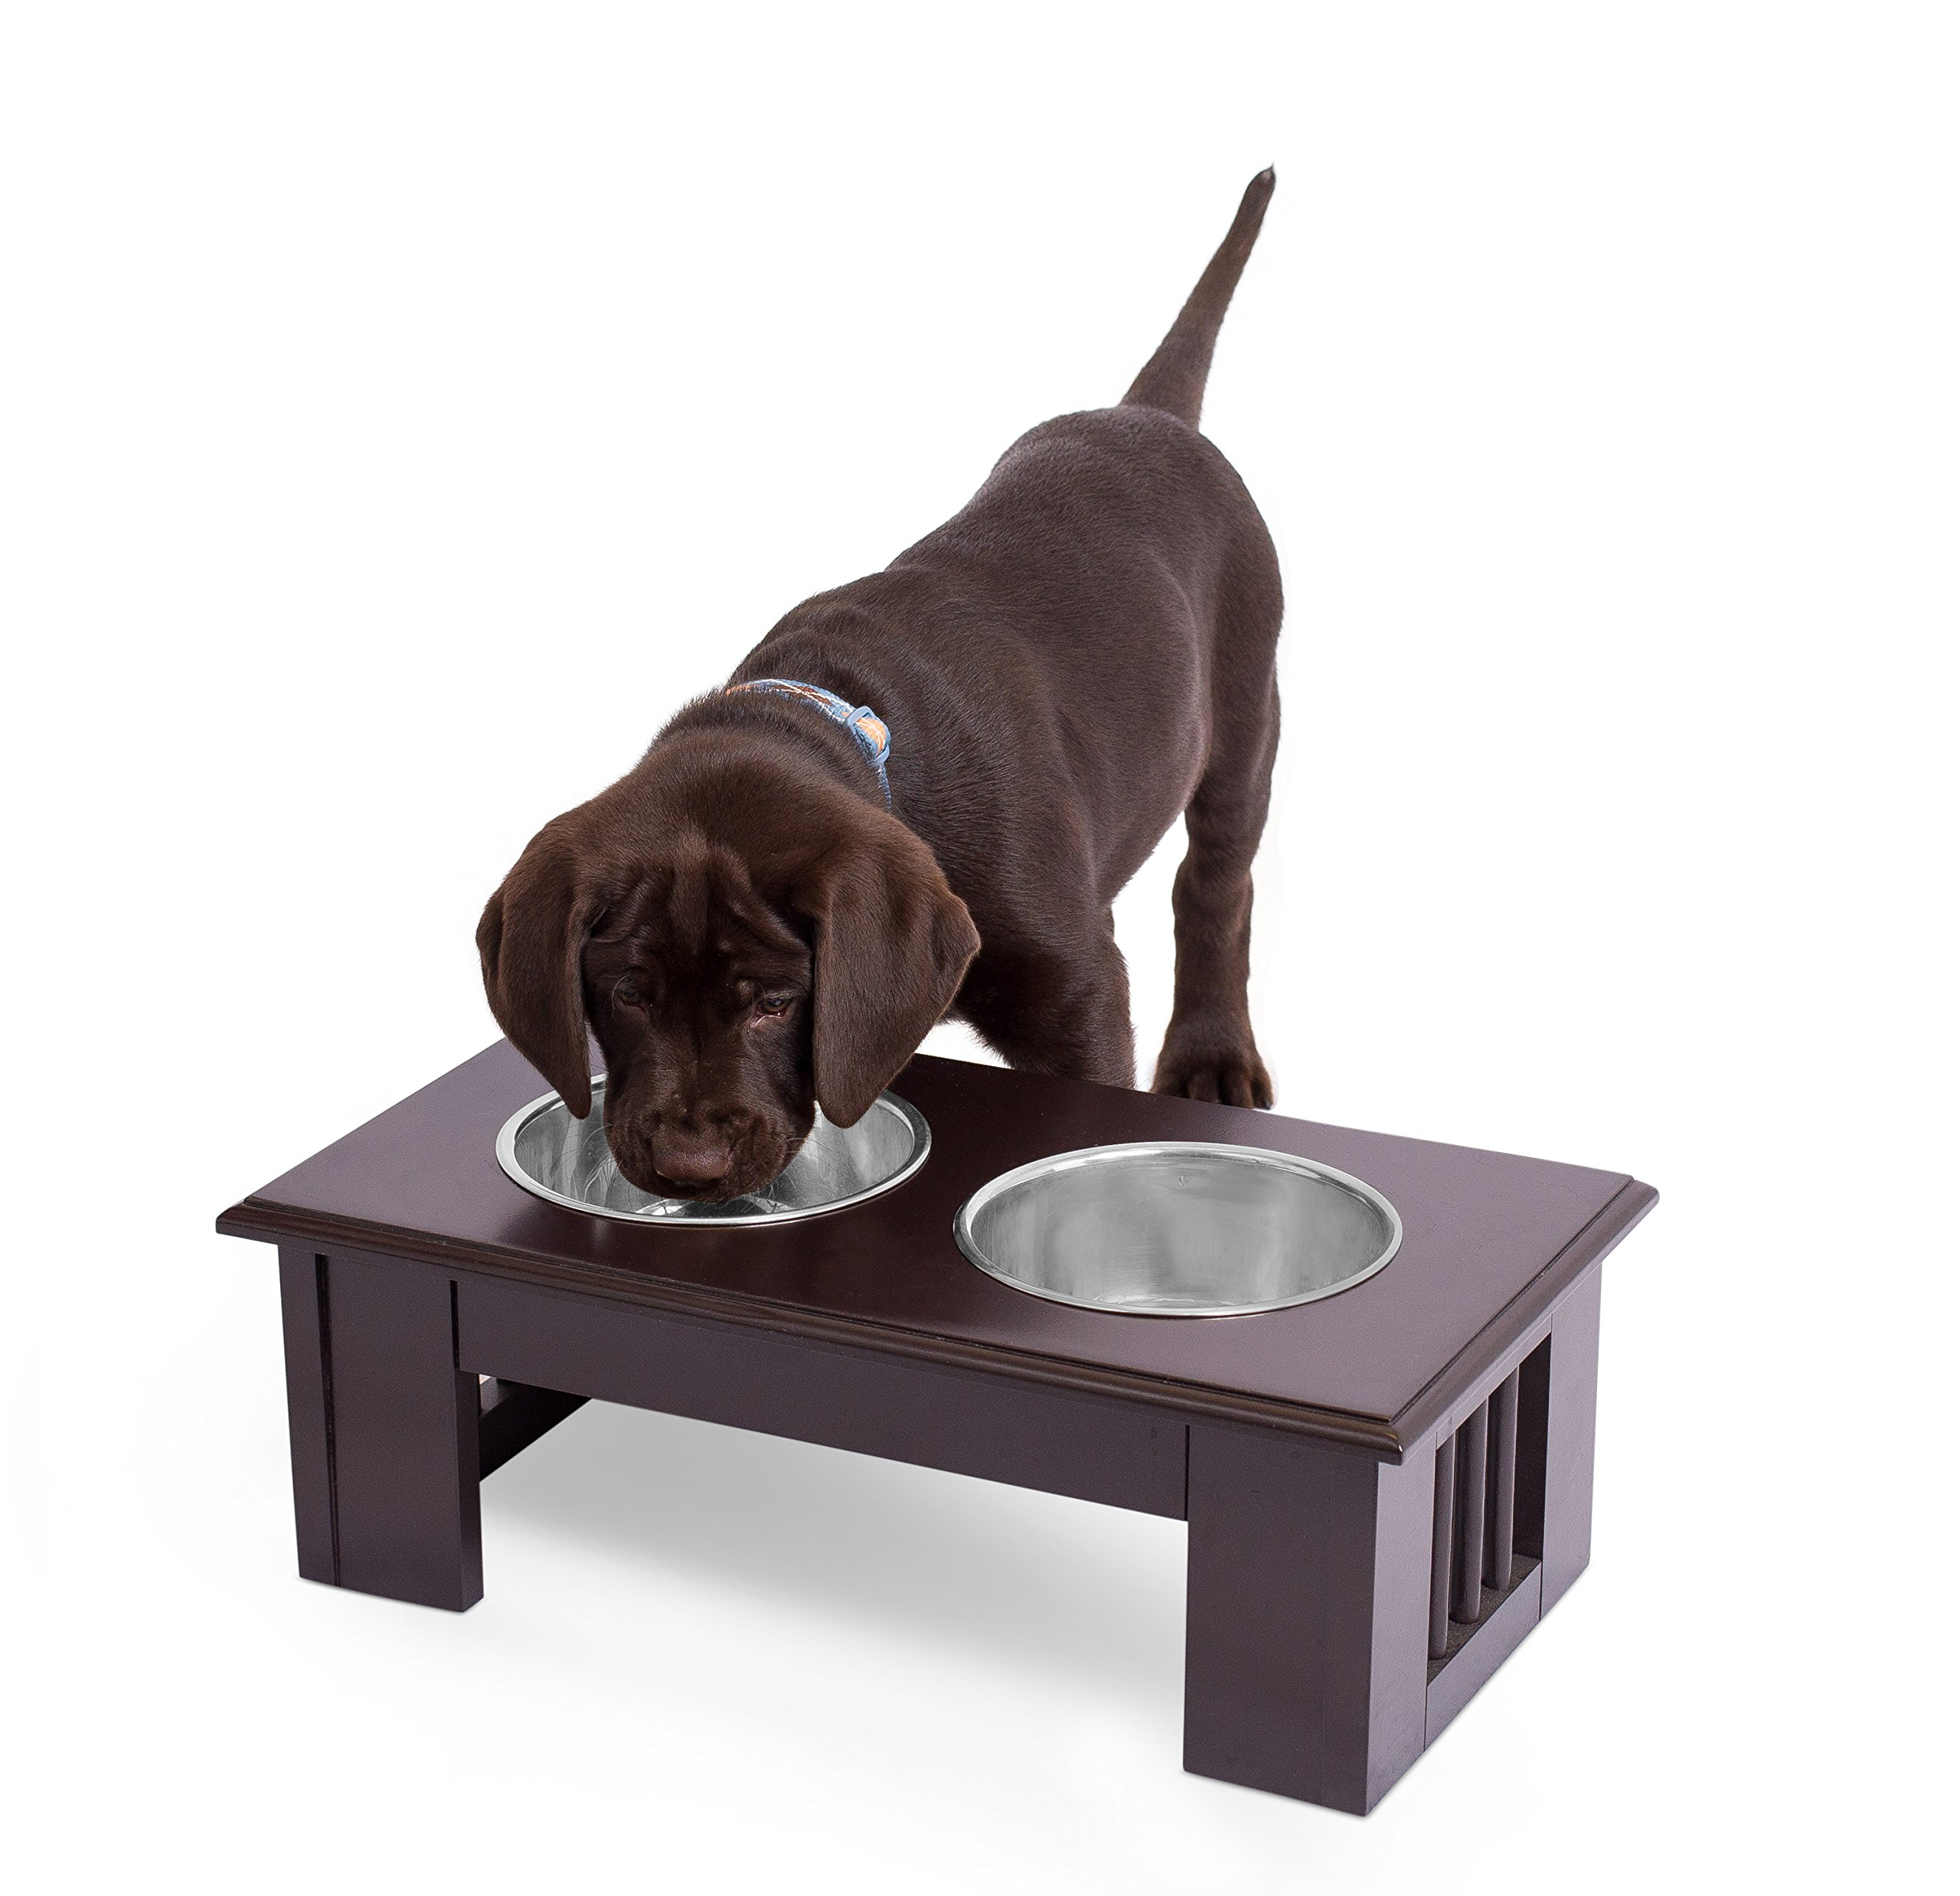 Internet's Best Traditional Elevated Pet Feeder | 2 Small Dog Food Water Bowls | Designer Decorative Raised Stand with Double Stainless Steel Bowls | Espresso